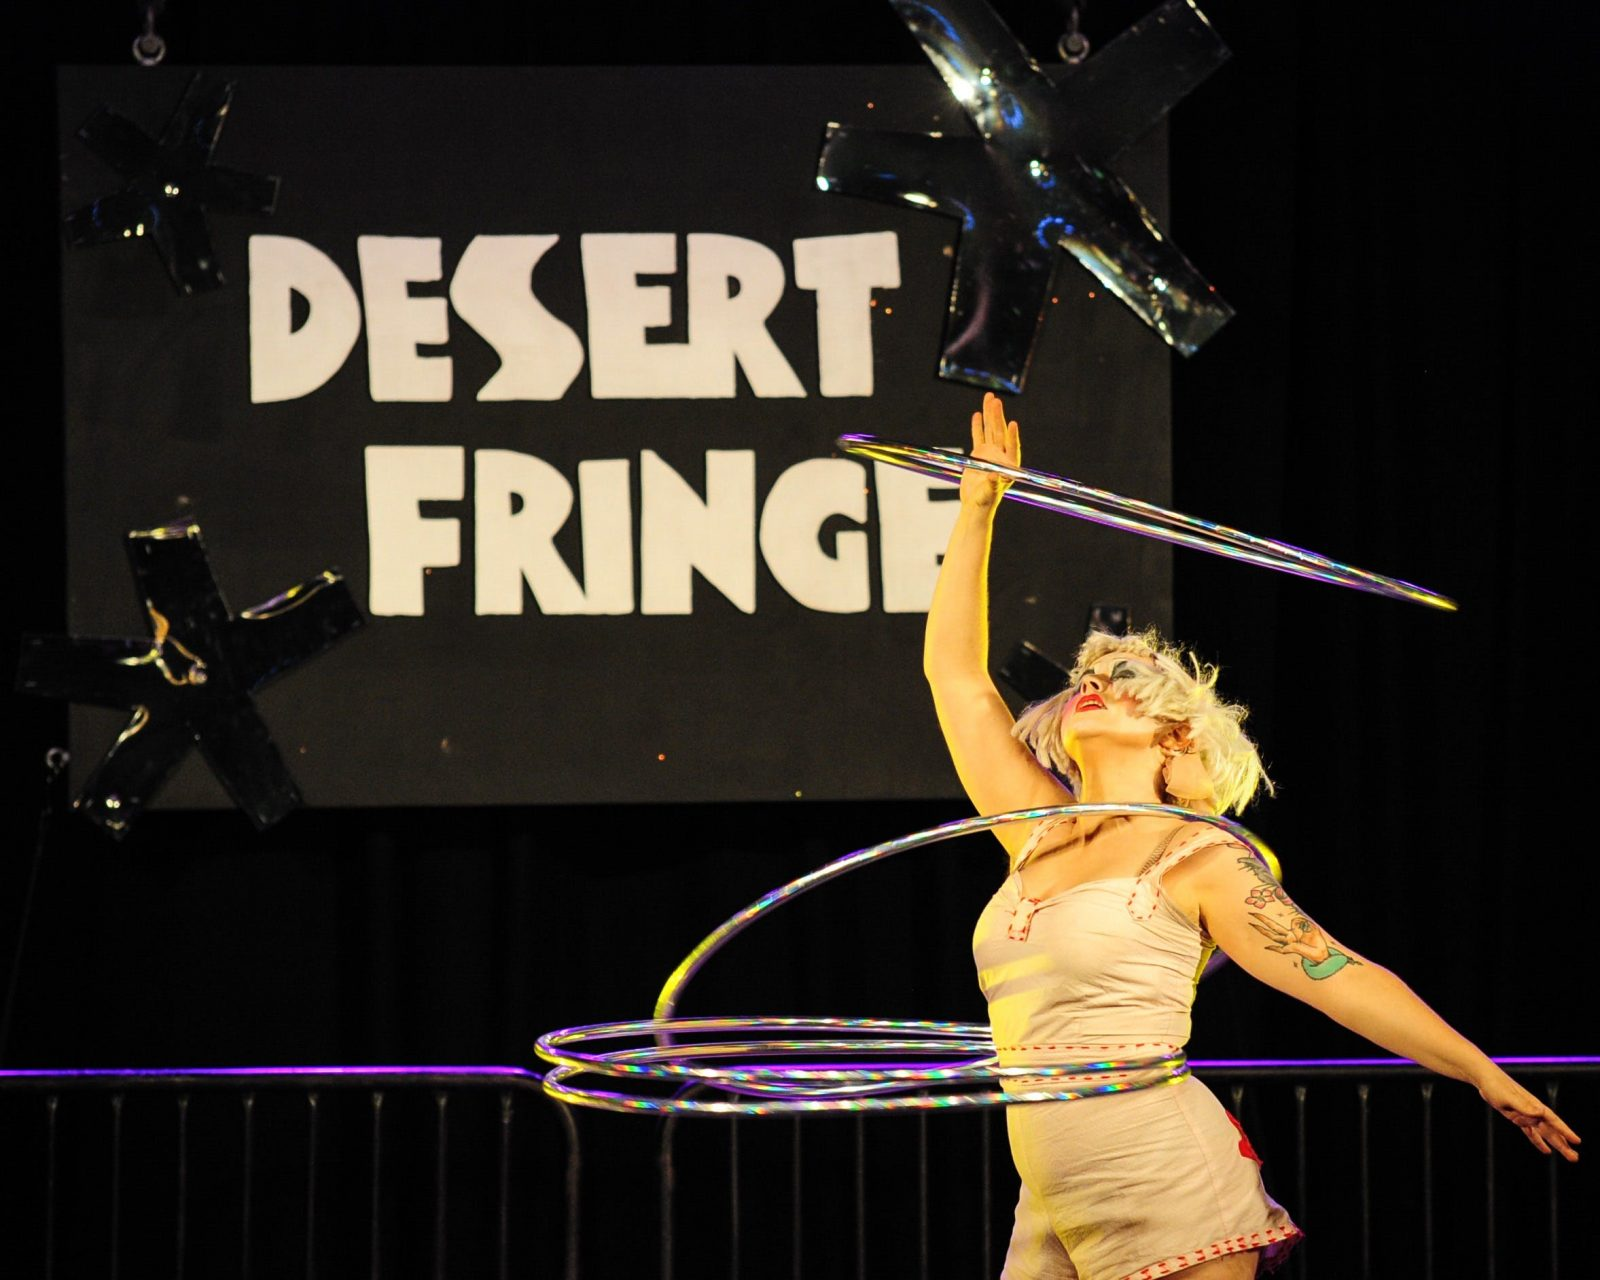 A performer is spinning many hoops around their body and arm in front of a Desert Fringe sign